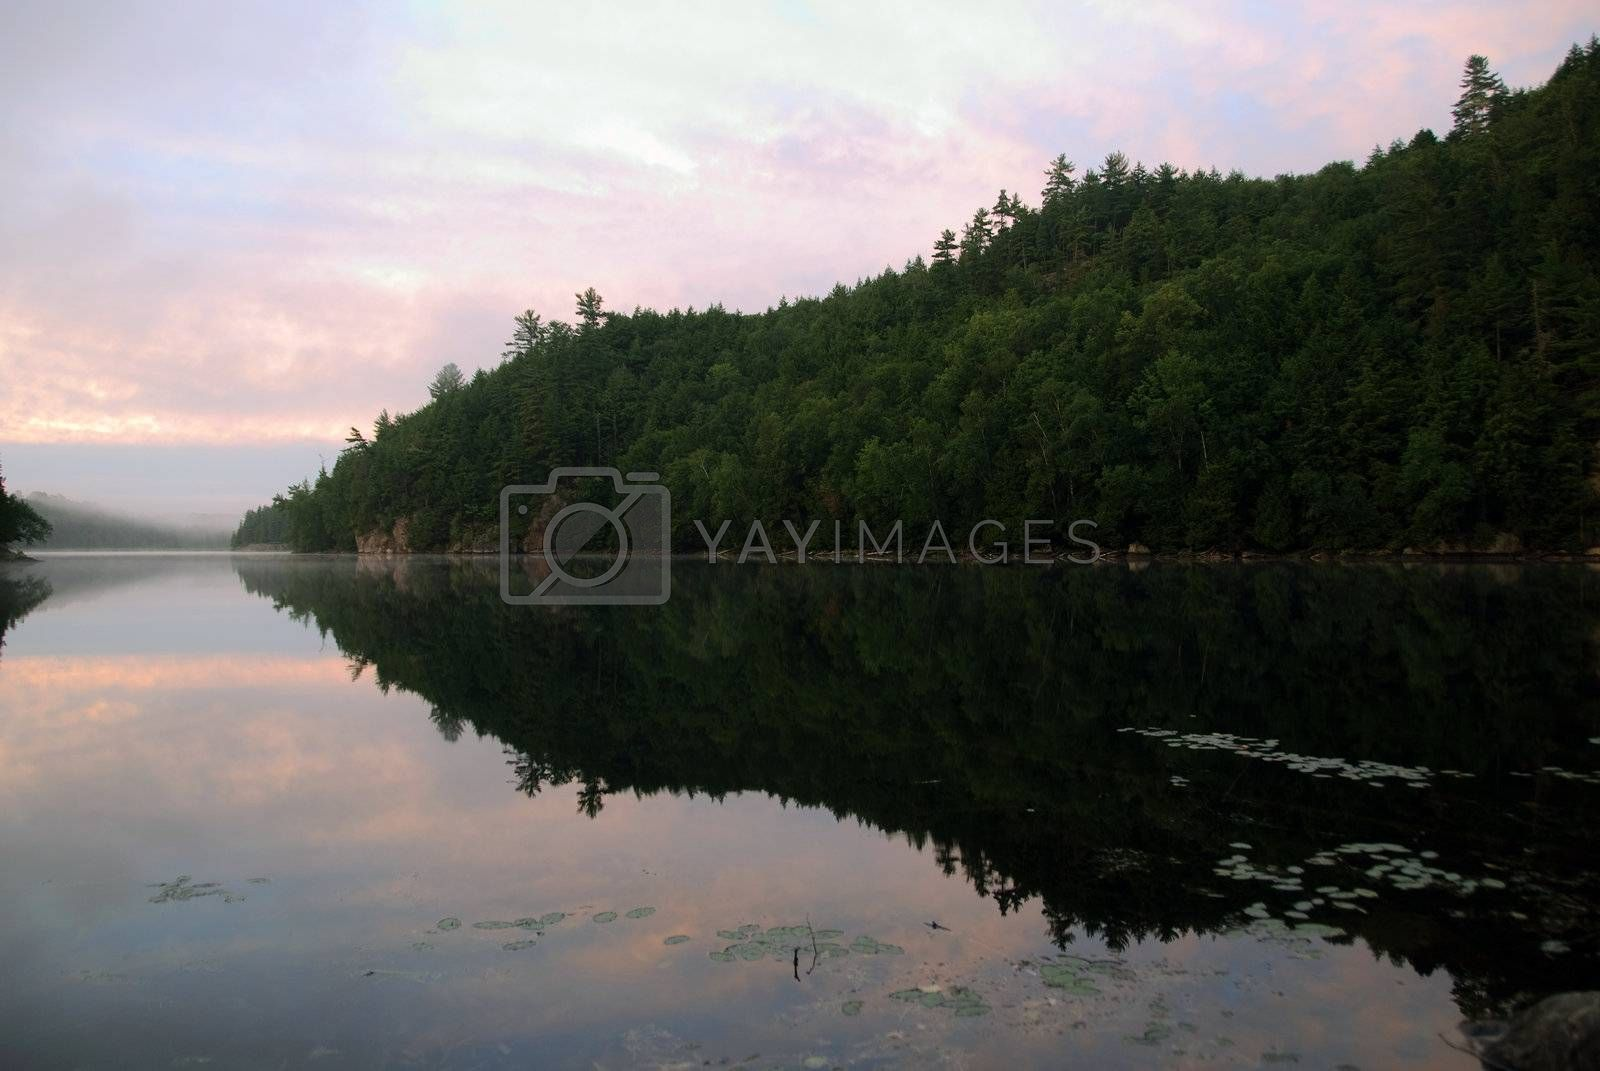 Royalty free image of North American landscape by nialat